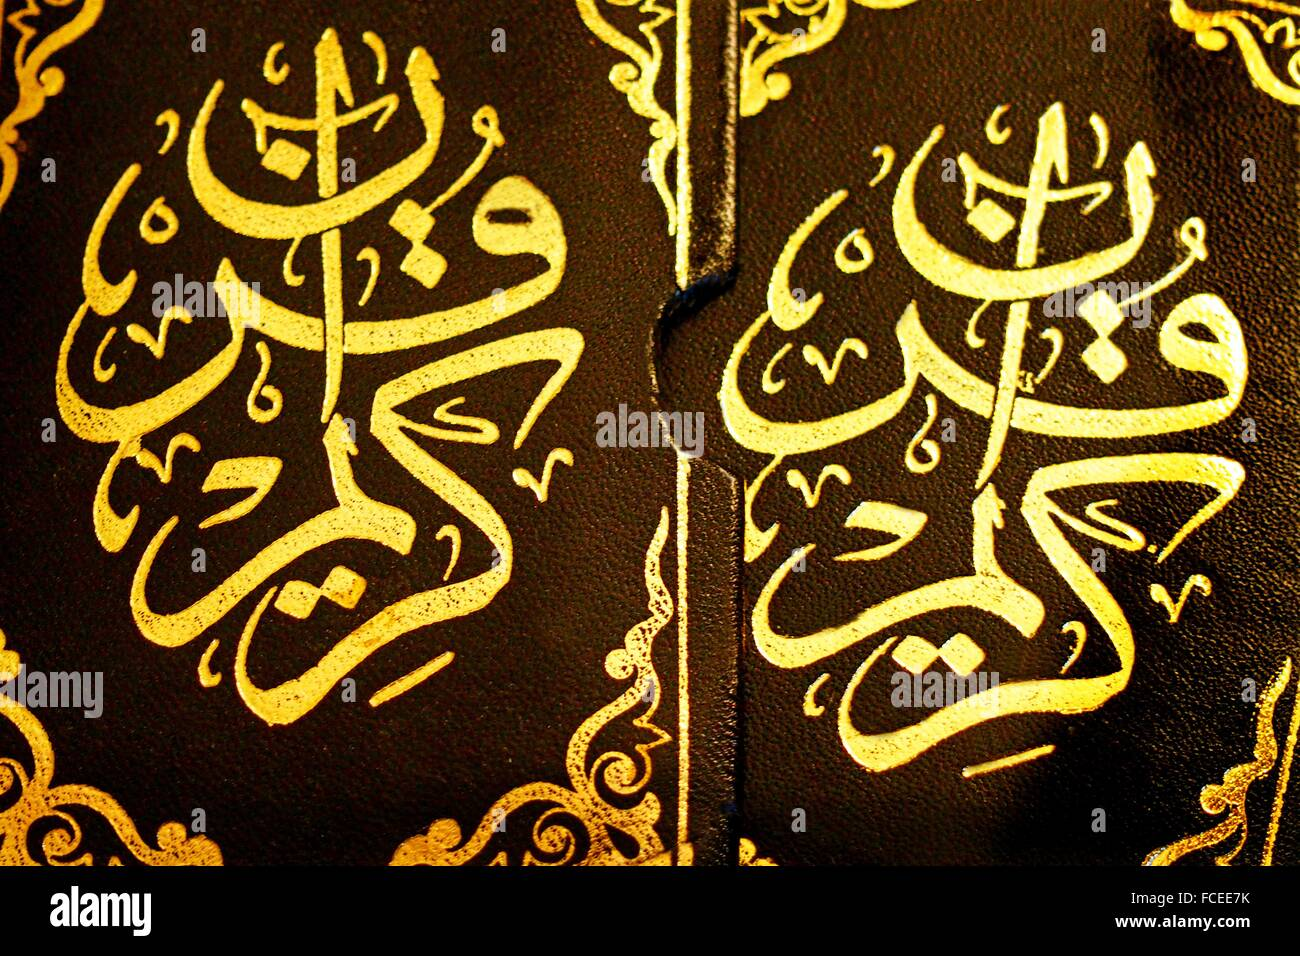 Islam, verses of the Quran printed in gold on leather - Stock Image